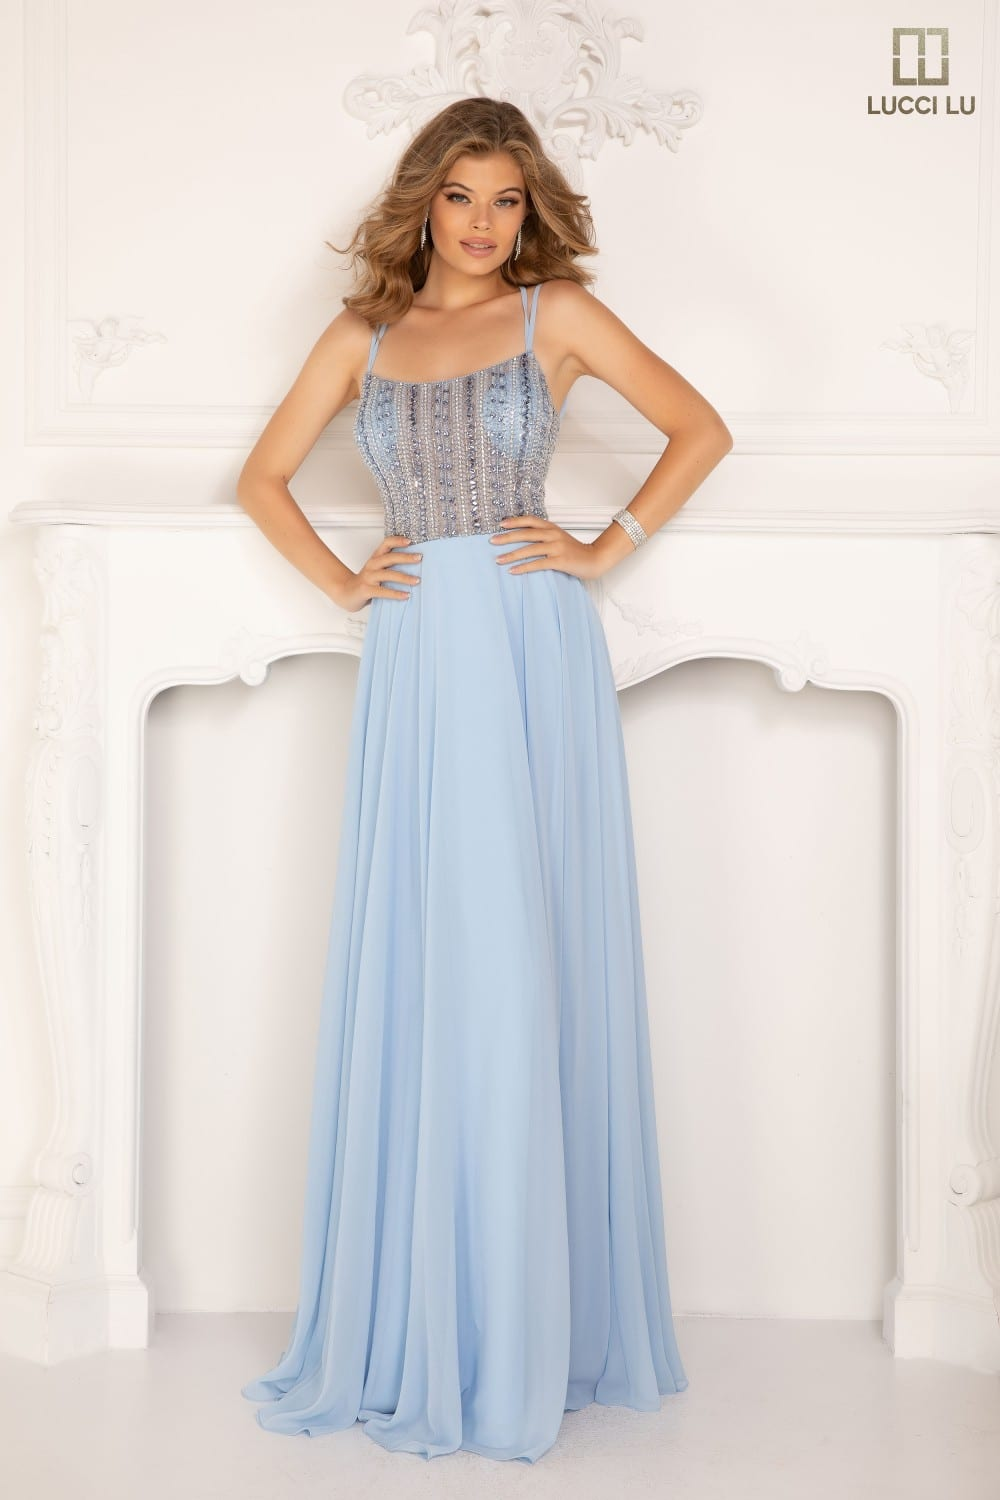 Scoop neck, sheer jeweled bodice, tulle skirt, lace up back, double spaghetti straps